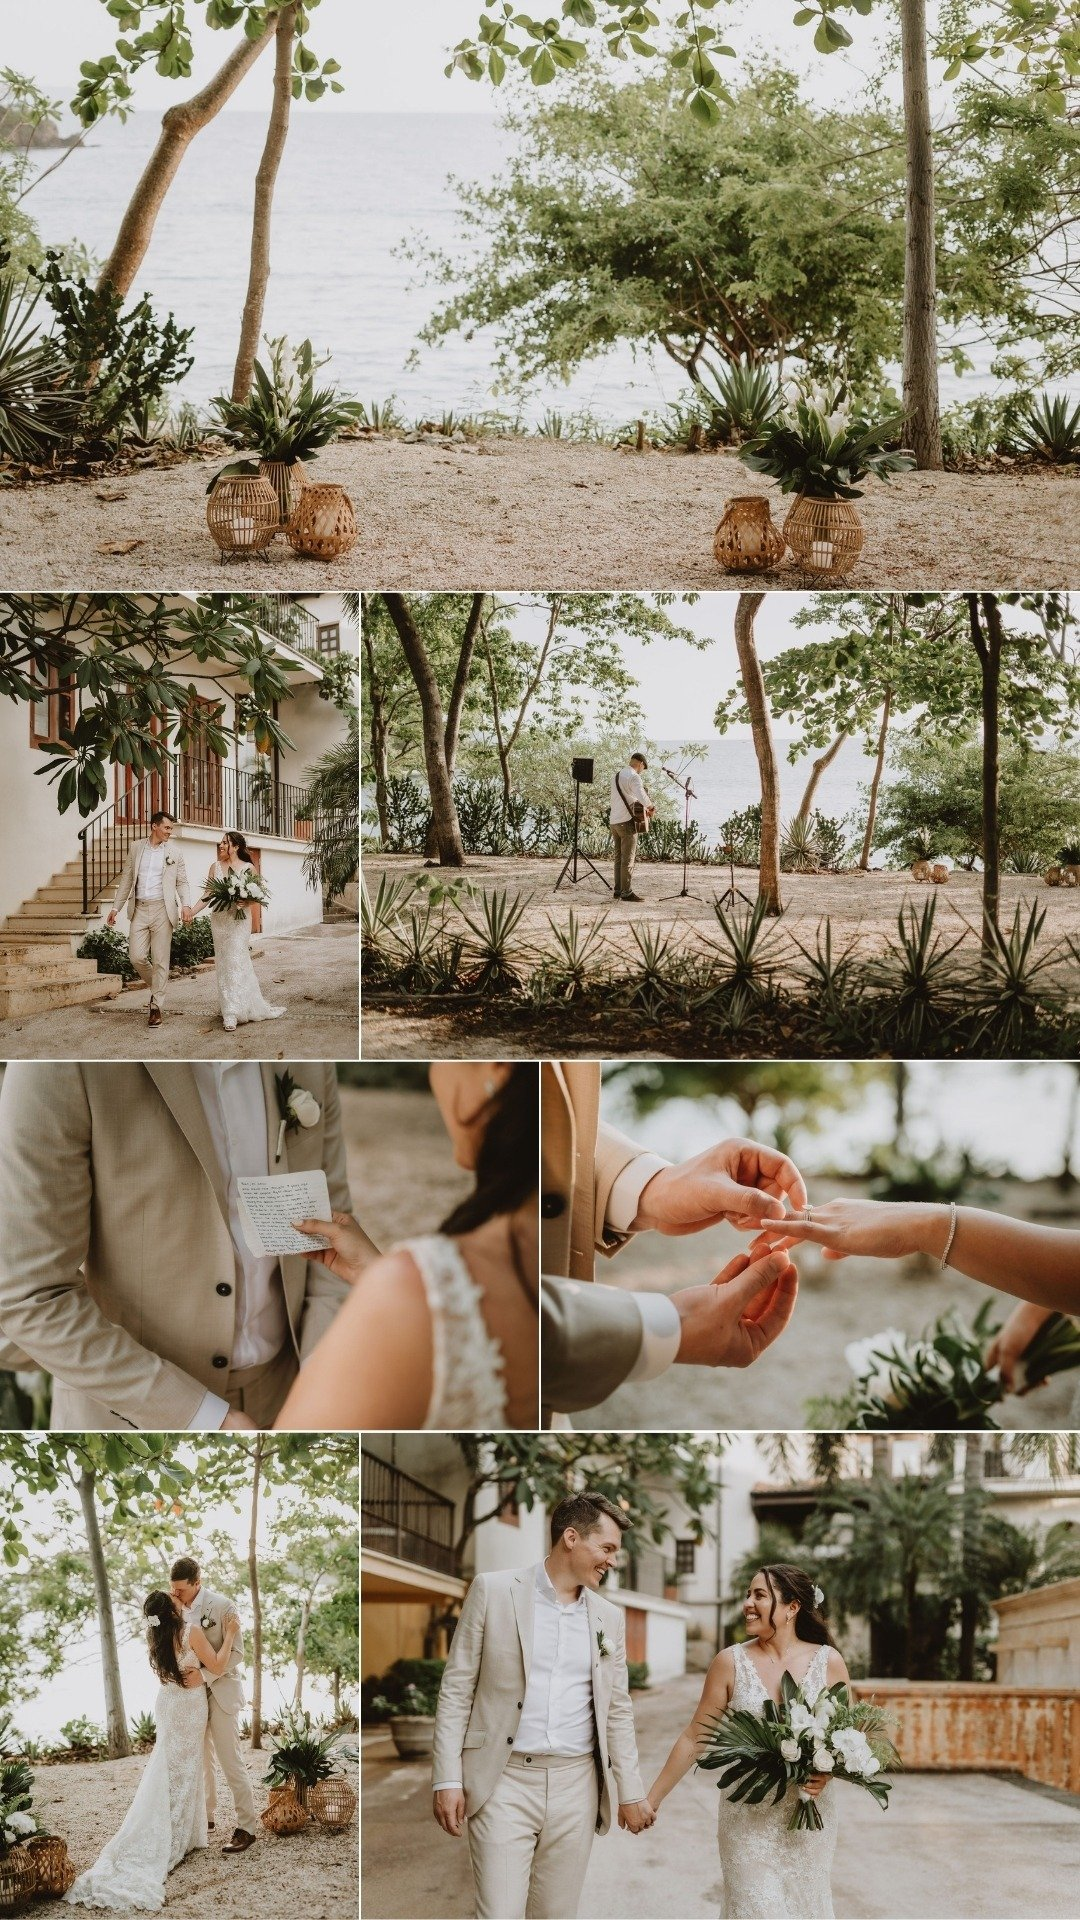 self uniting marriage ceremony in costa rica